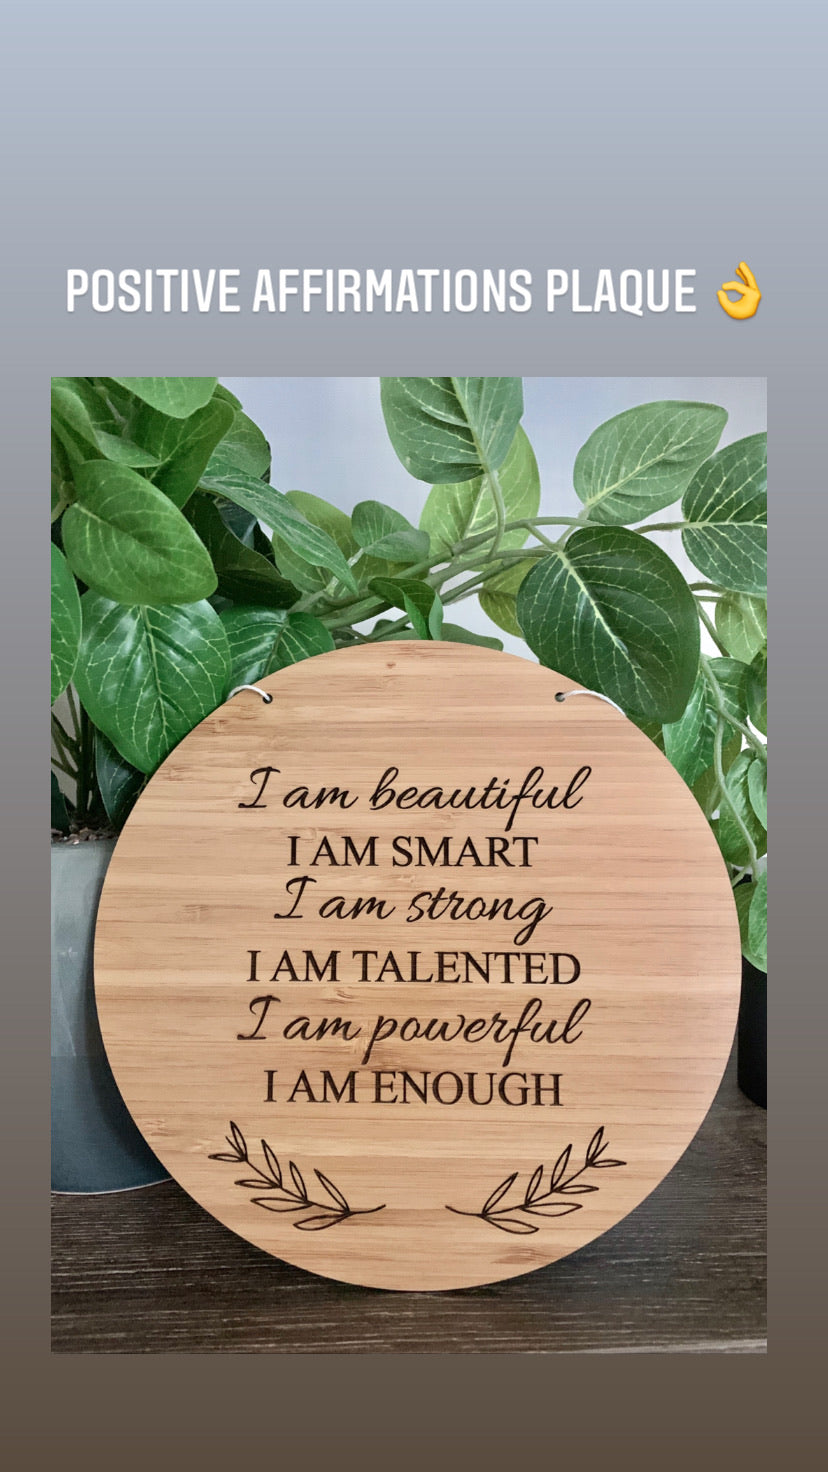 POSITIVE AFFIRMATIONS PLAQUE